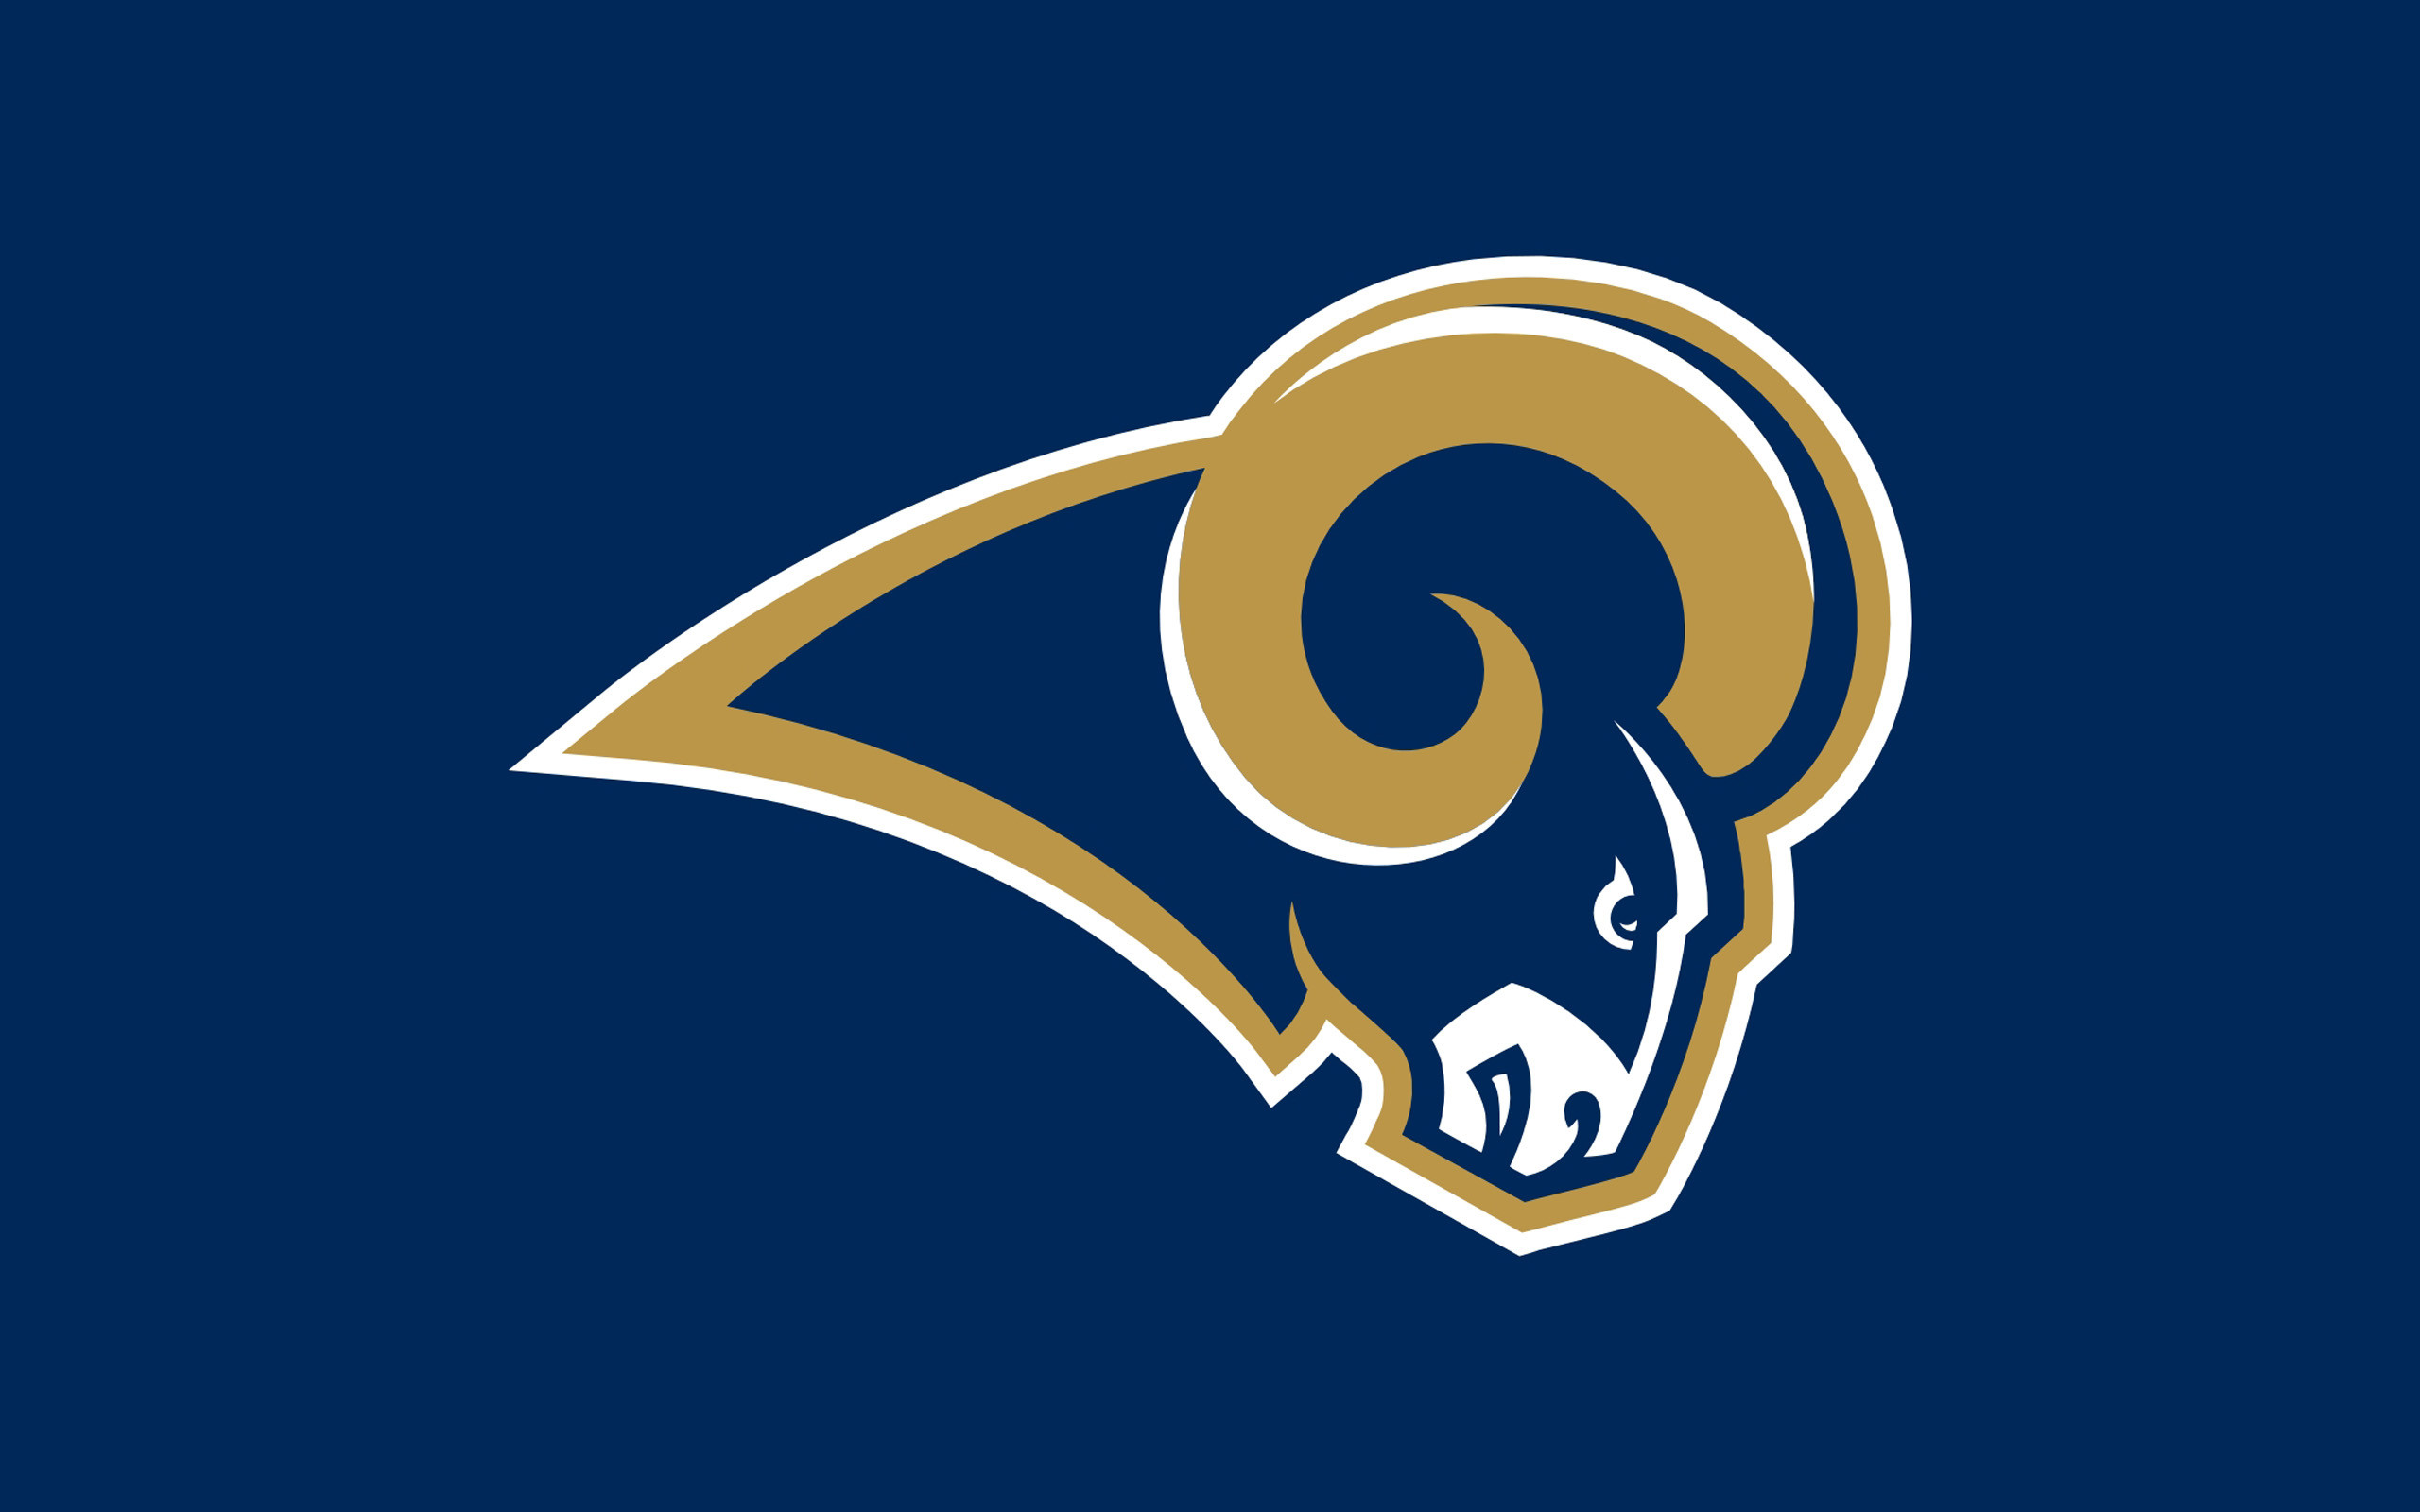 nfl team logo wallpaper 55 images